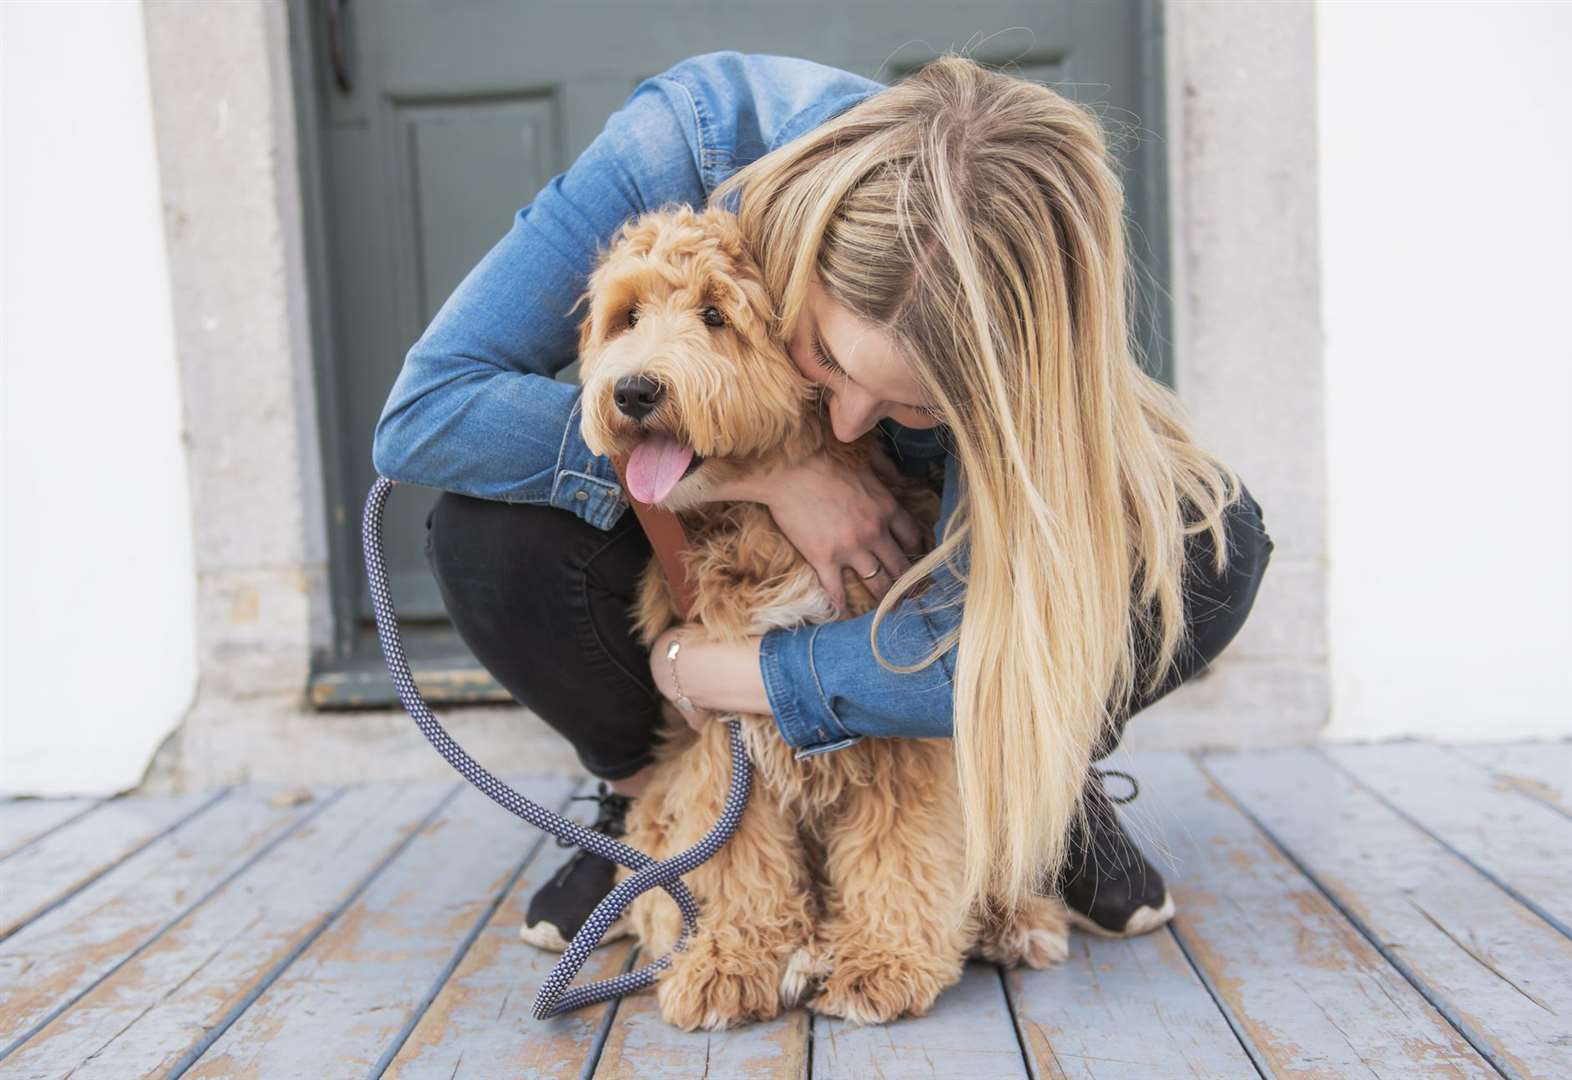 Does my dog like me? Here's how to read its body language to find out.